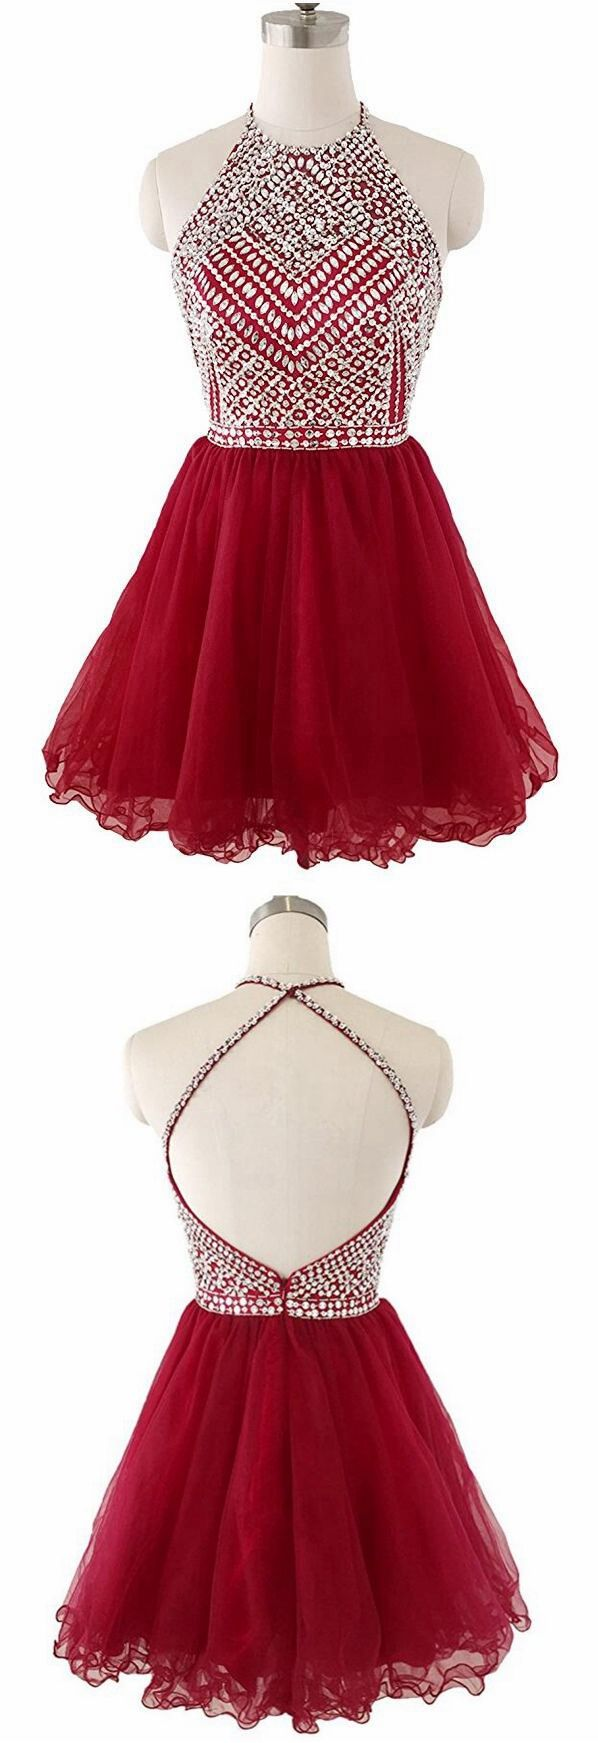 Red Homecoming Dress with Cross Back Strap,Short Prom Dress,Back To School Dresses · BBTrending · Online Store Powered by Storenvy